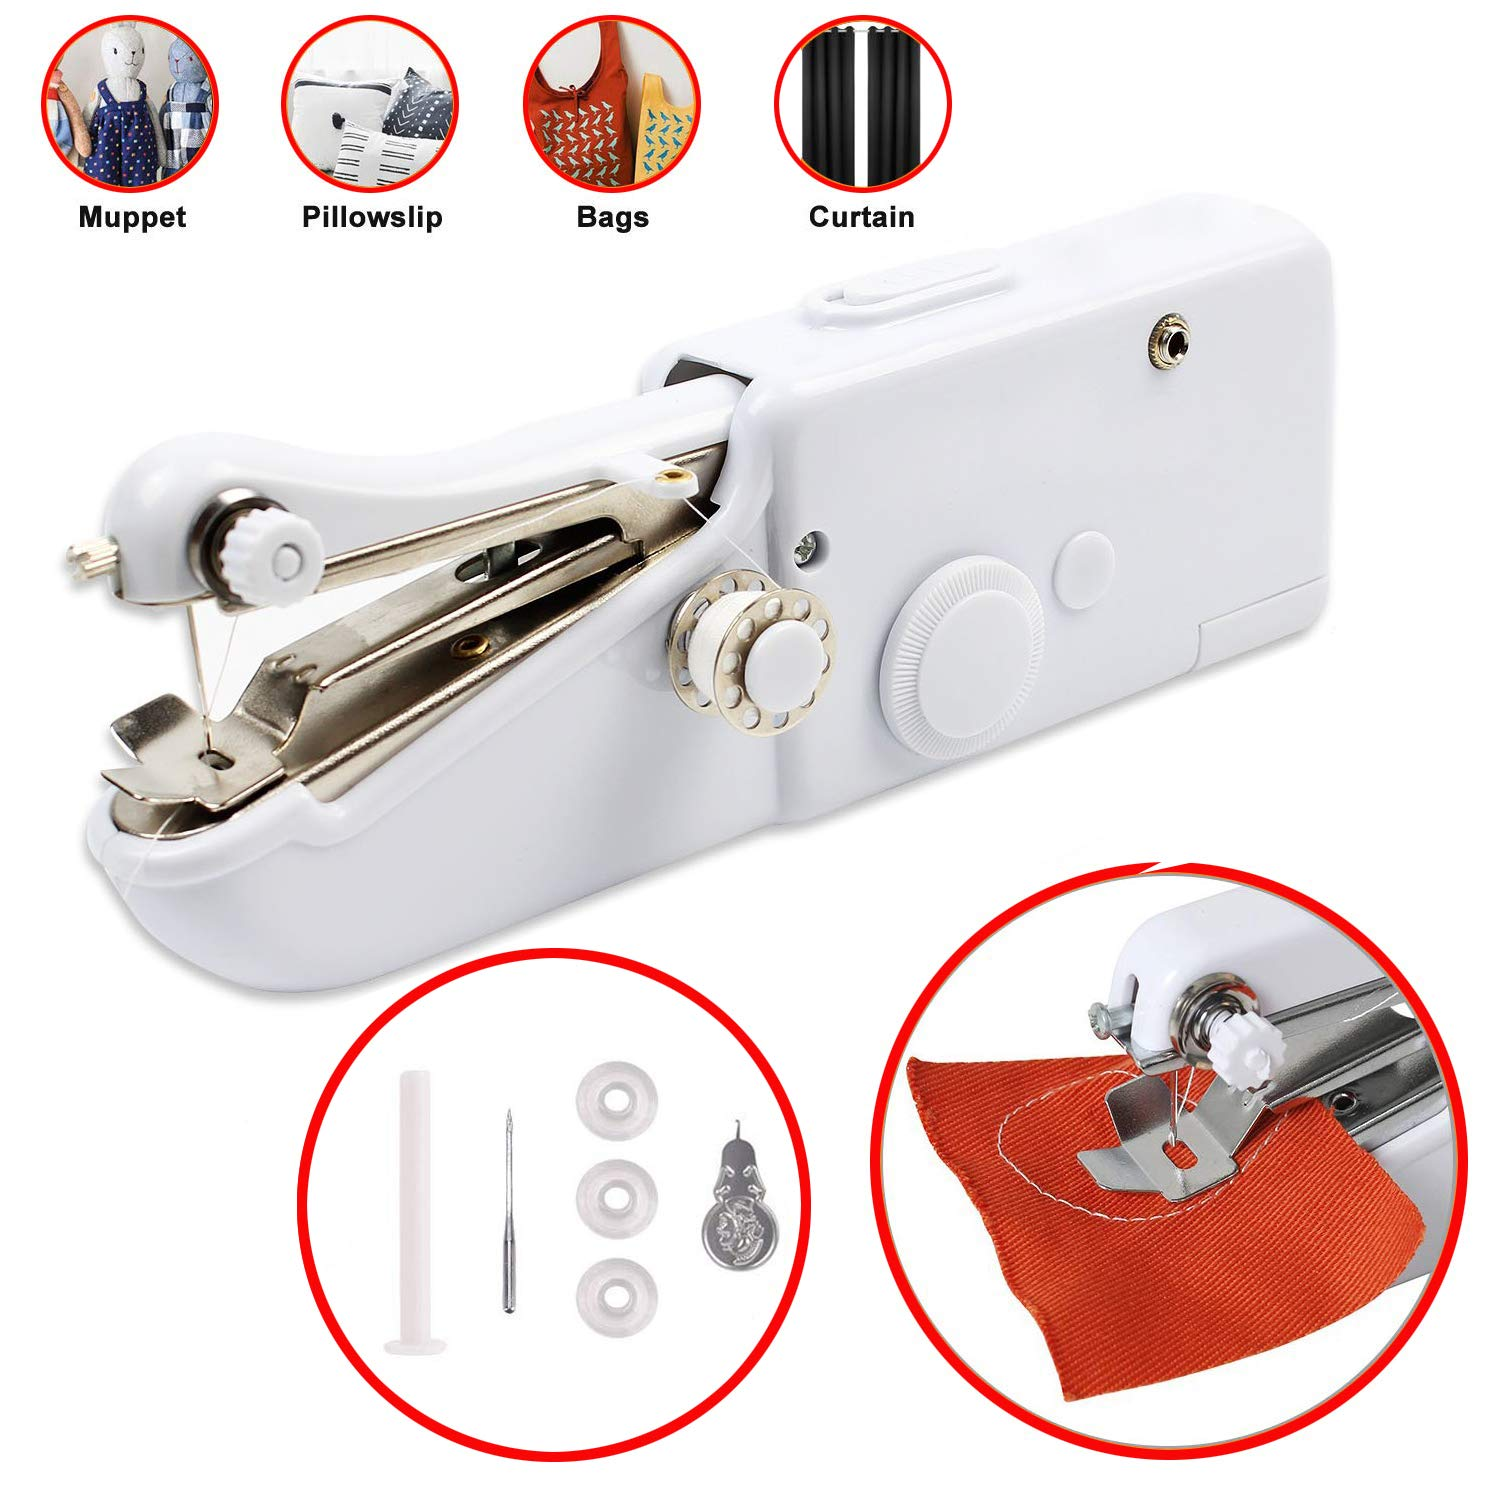 Handheld Sewing Machine Portable Stitching Machine FineWish Cordless Sewing Machine Mini Stitch Craft Machine DIY Home Travel for Fabric Clothing Kids Cloth Pet Clothes (Battery Not Included) by FineWish